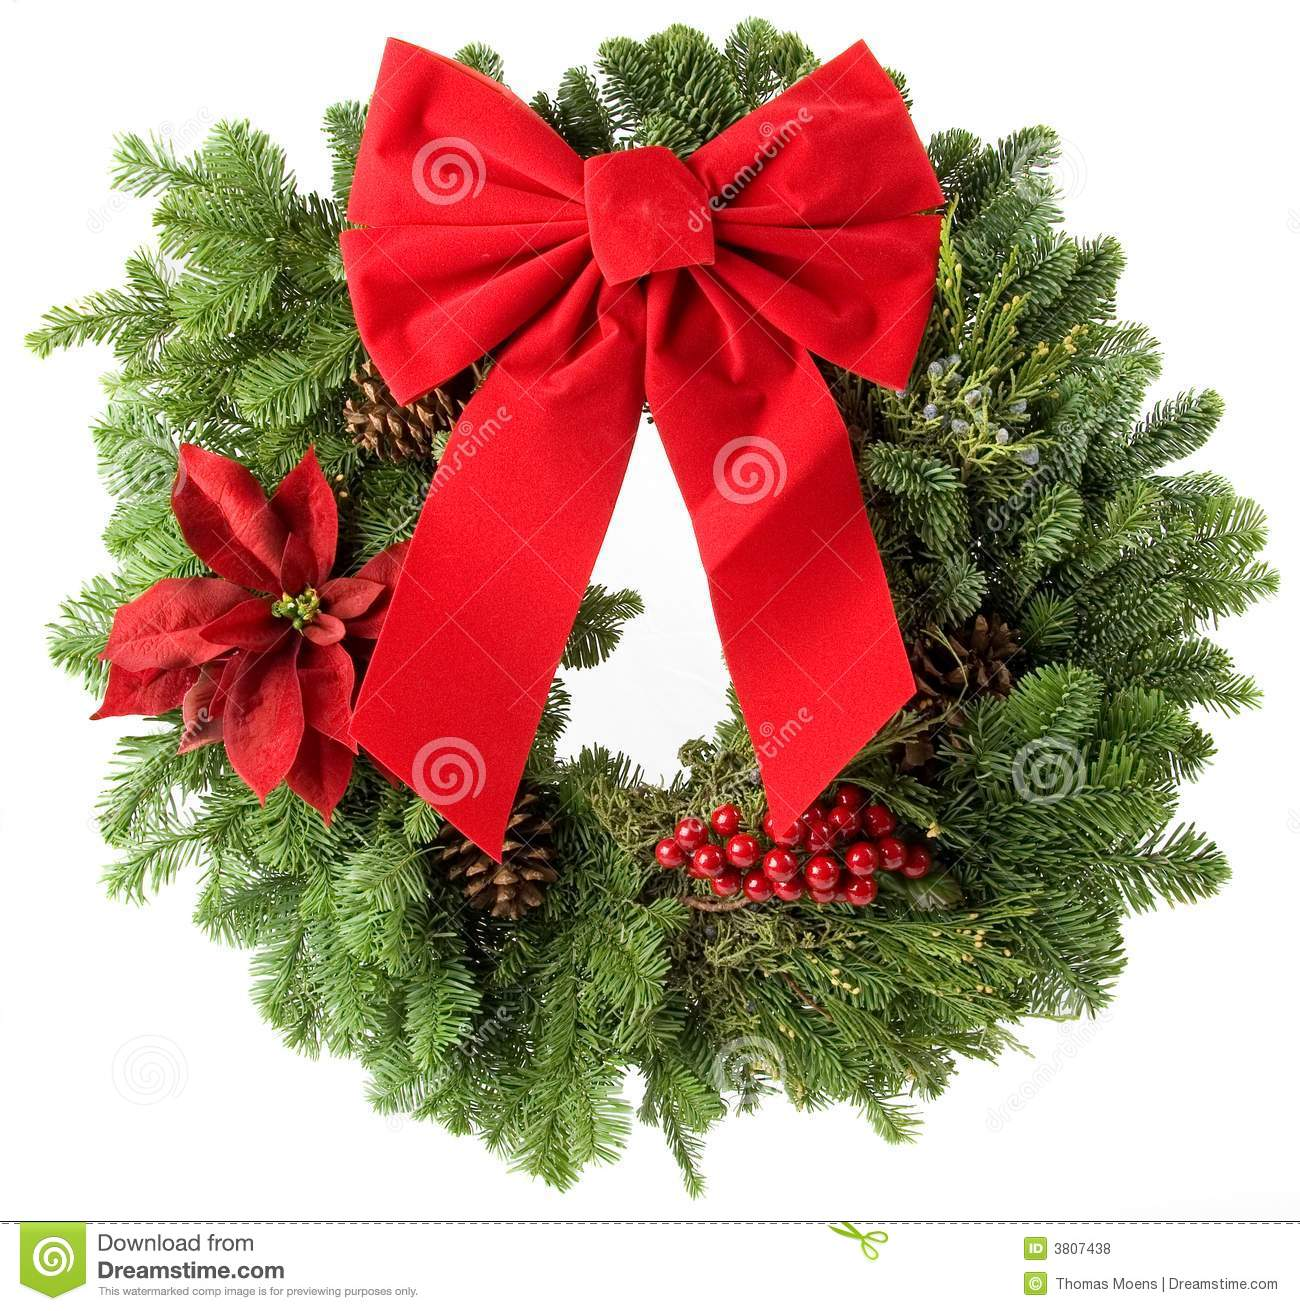 Merry Christmas Boughs Clipart - Clipart Suggest